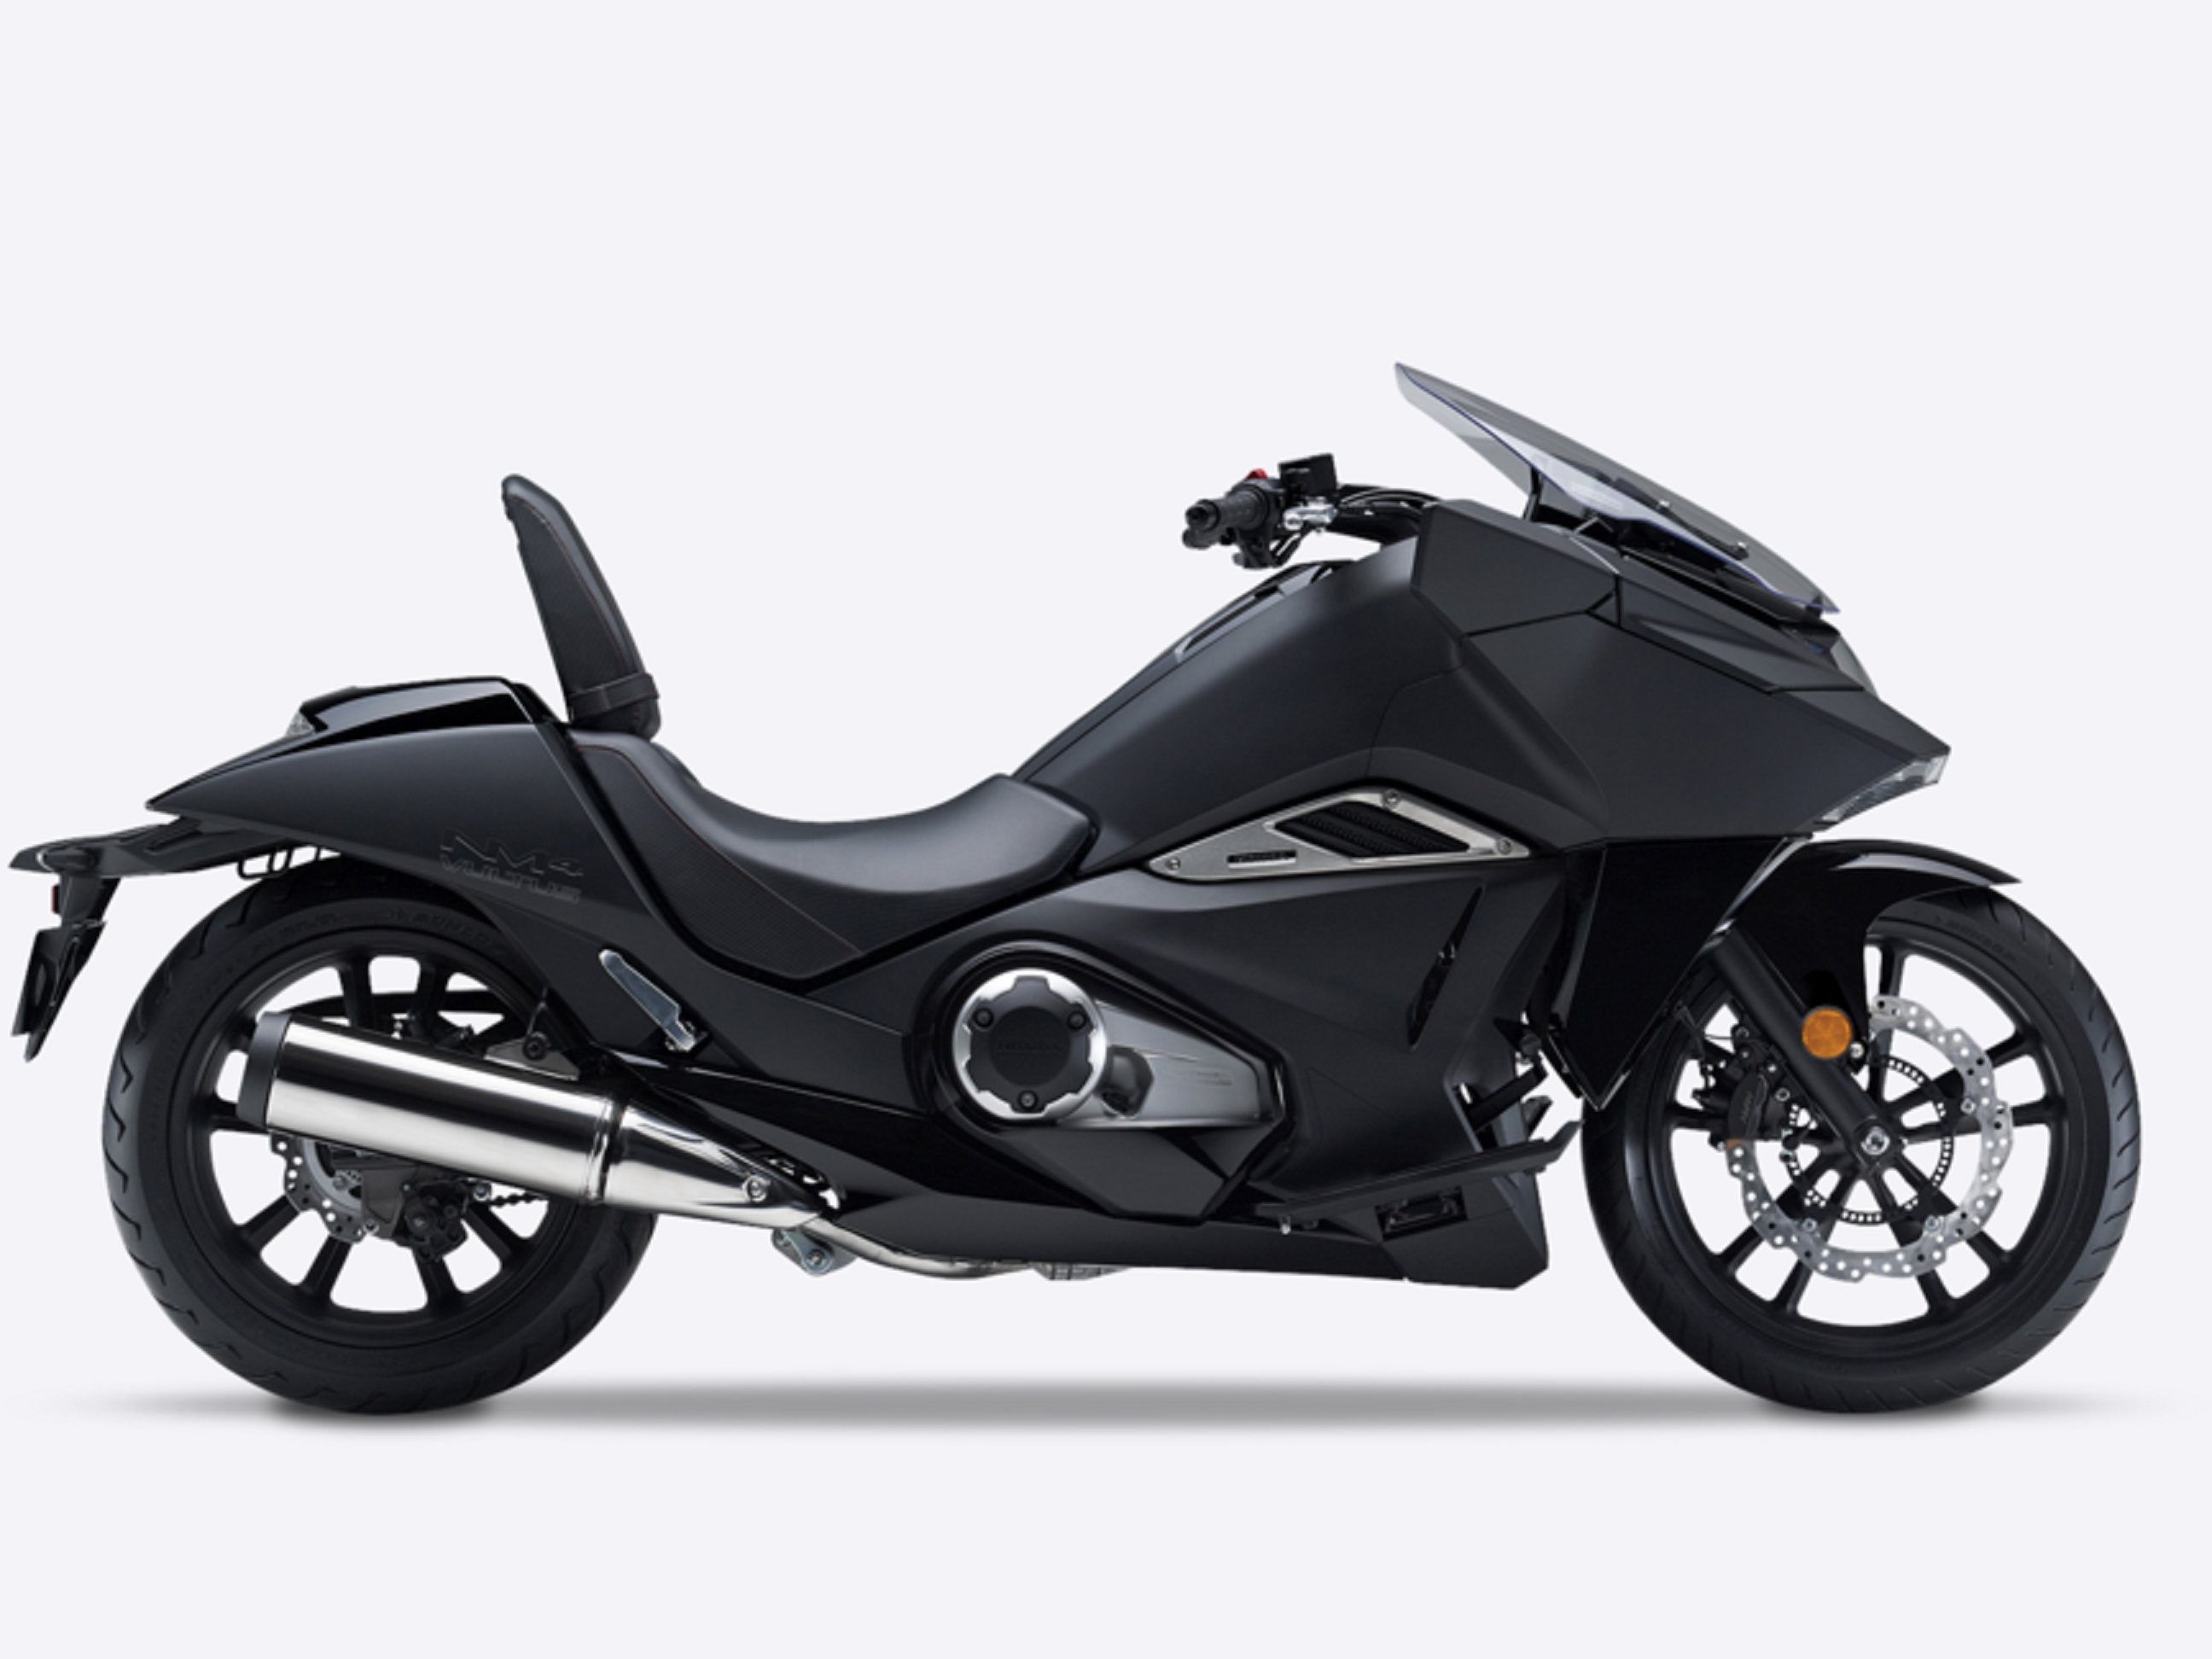 Honda vultus concept motorcycle was unveiled at osaka motorcycle it s a sporty motorbike developed under the vision of creating